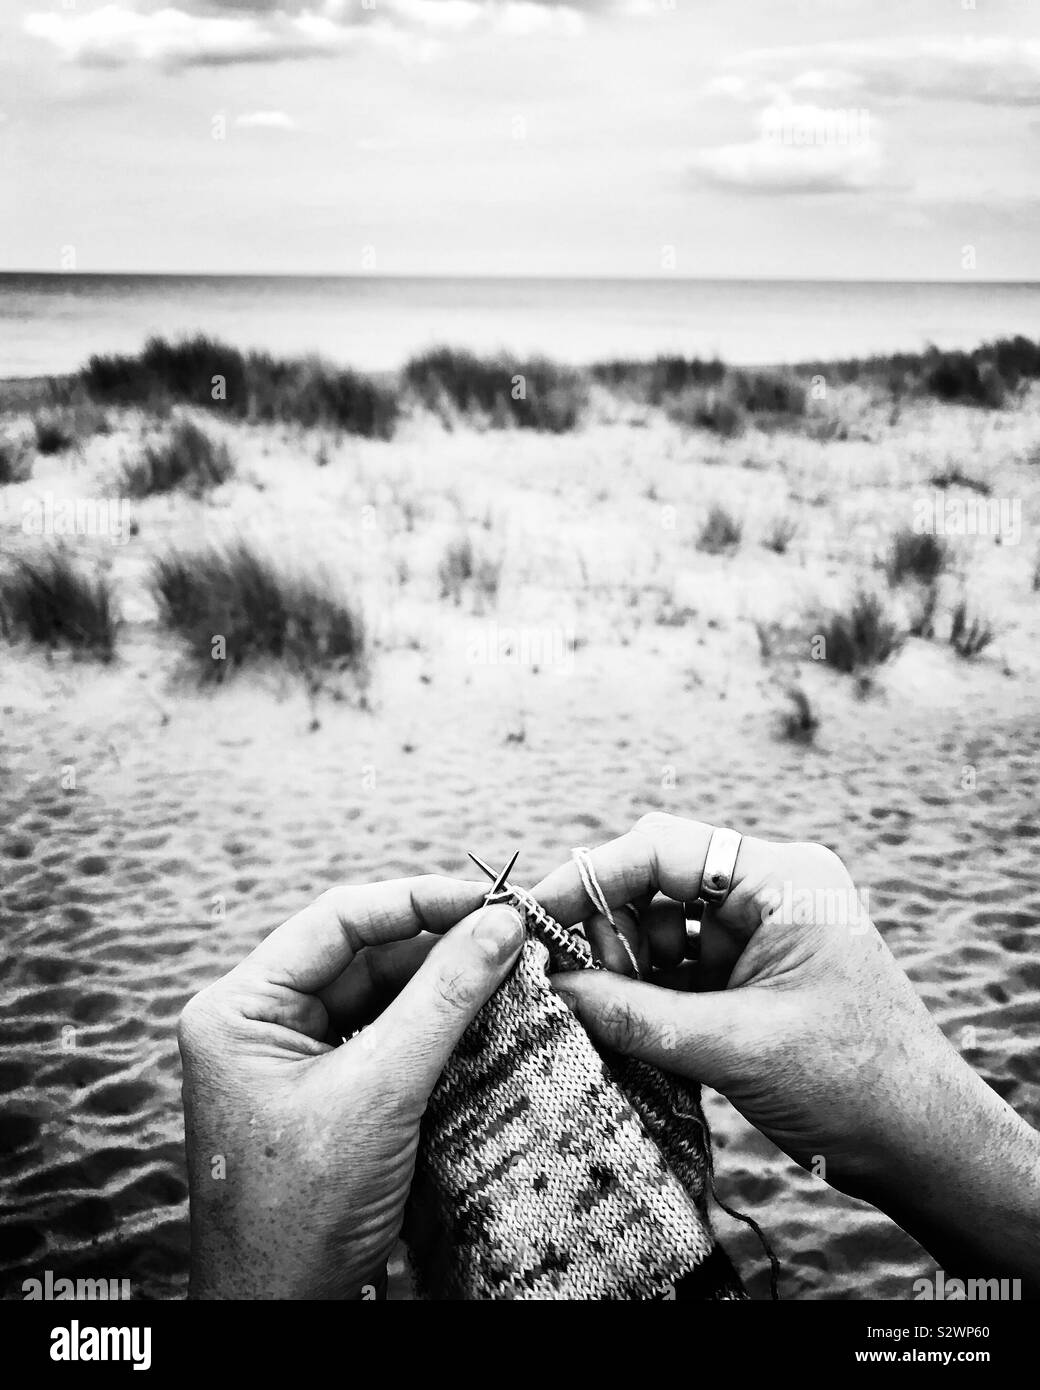 Knitting on the beach at Mablethorpe, Lincolnshire Stock Photo